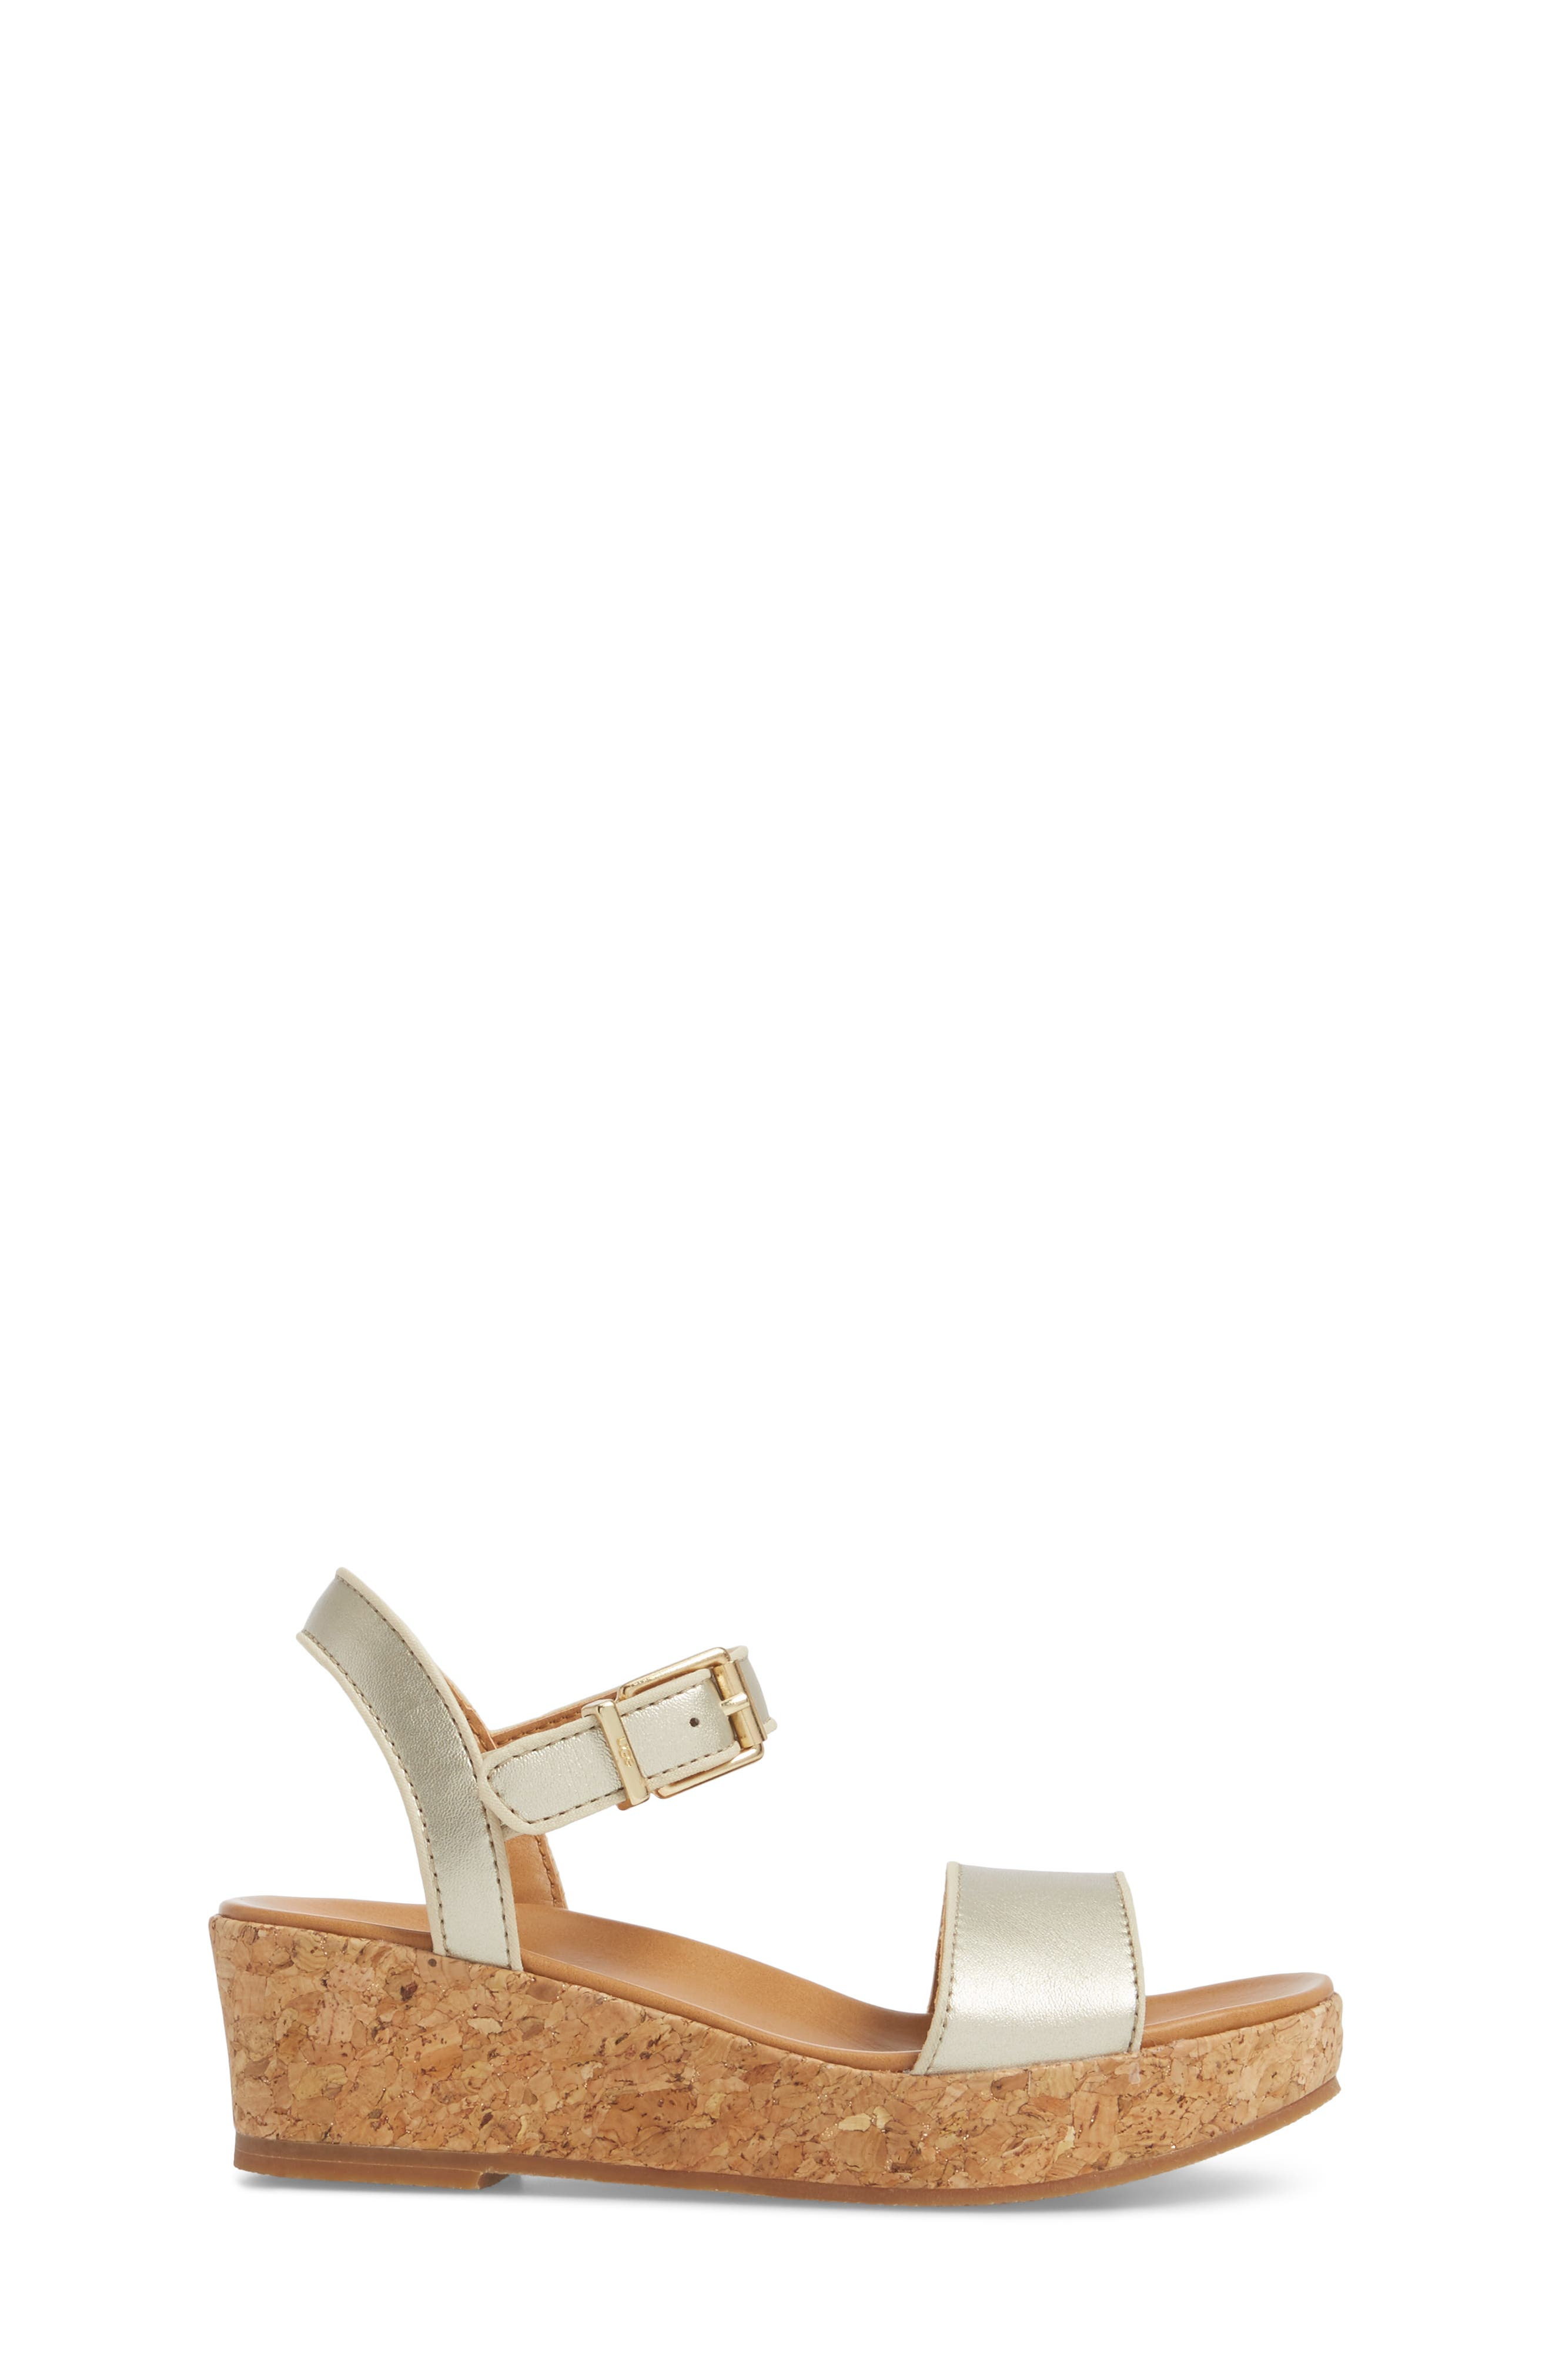 UGG<SUP>®</SUP>, Milley Wedge Sandal, Alternate thumbnail 3, color, GOLD